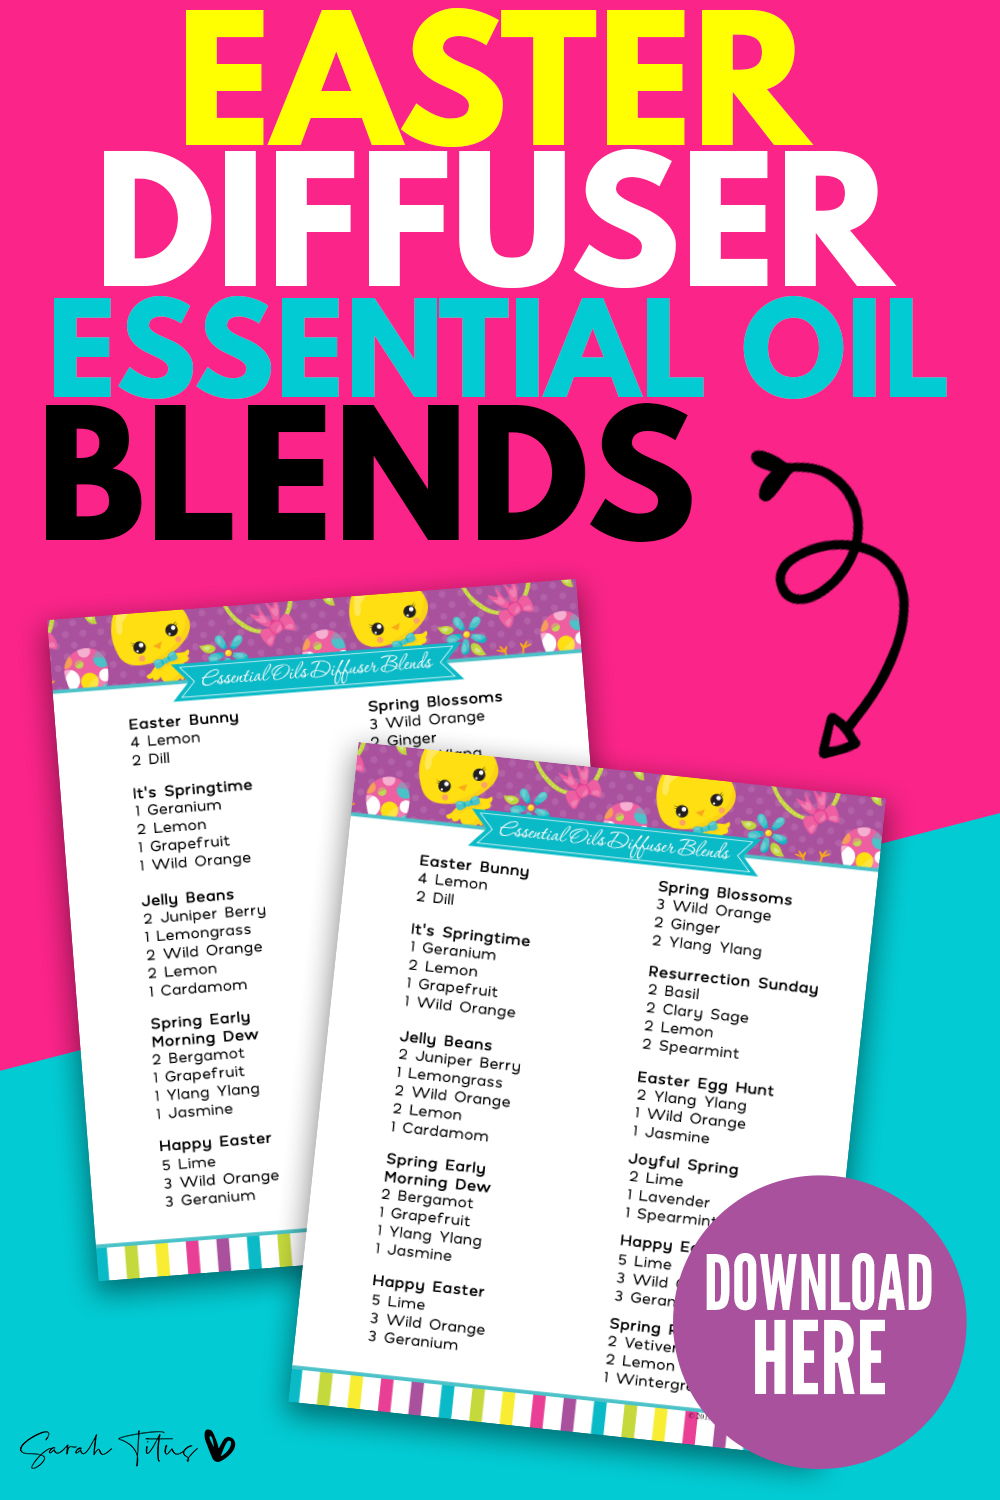 Easter Diffuser Essential Oil Blends Sarah Titus From Homeless To 8 Figures